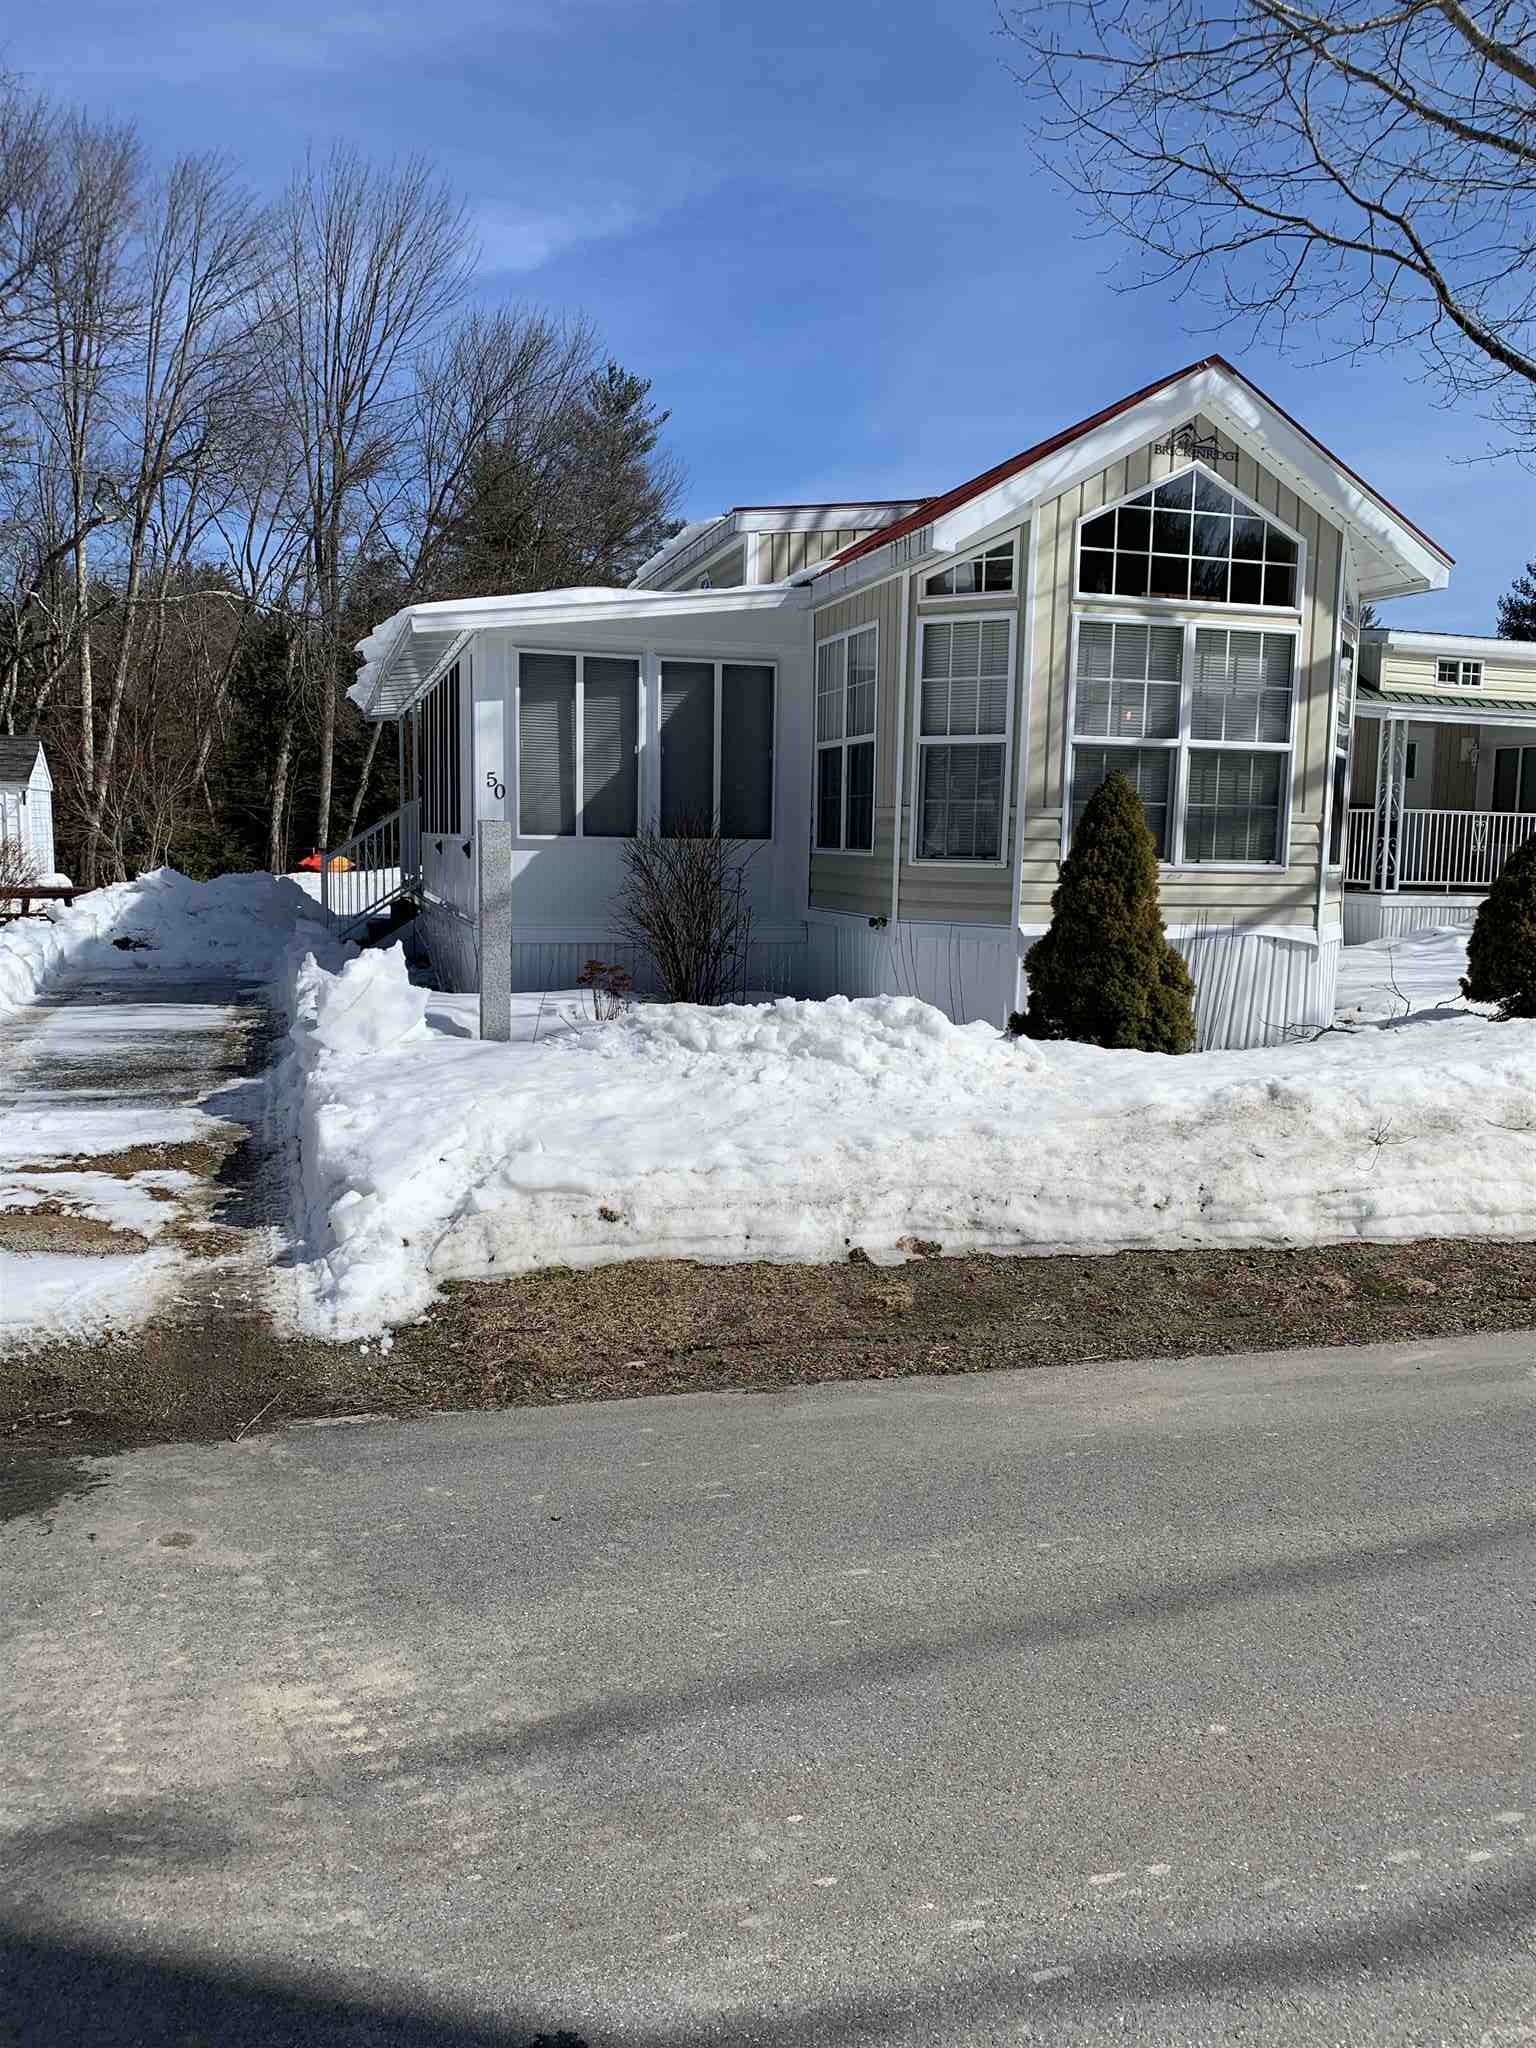 MLS 4798943: 81 Wulamat Road, Bristol NH